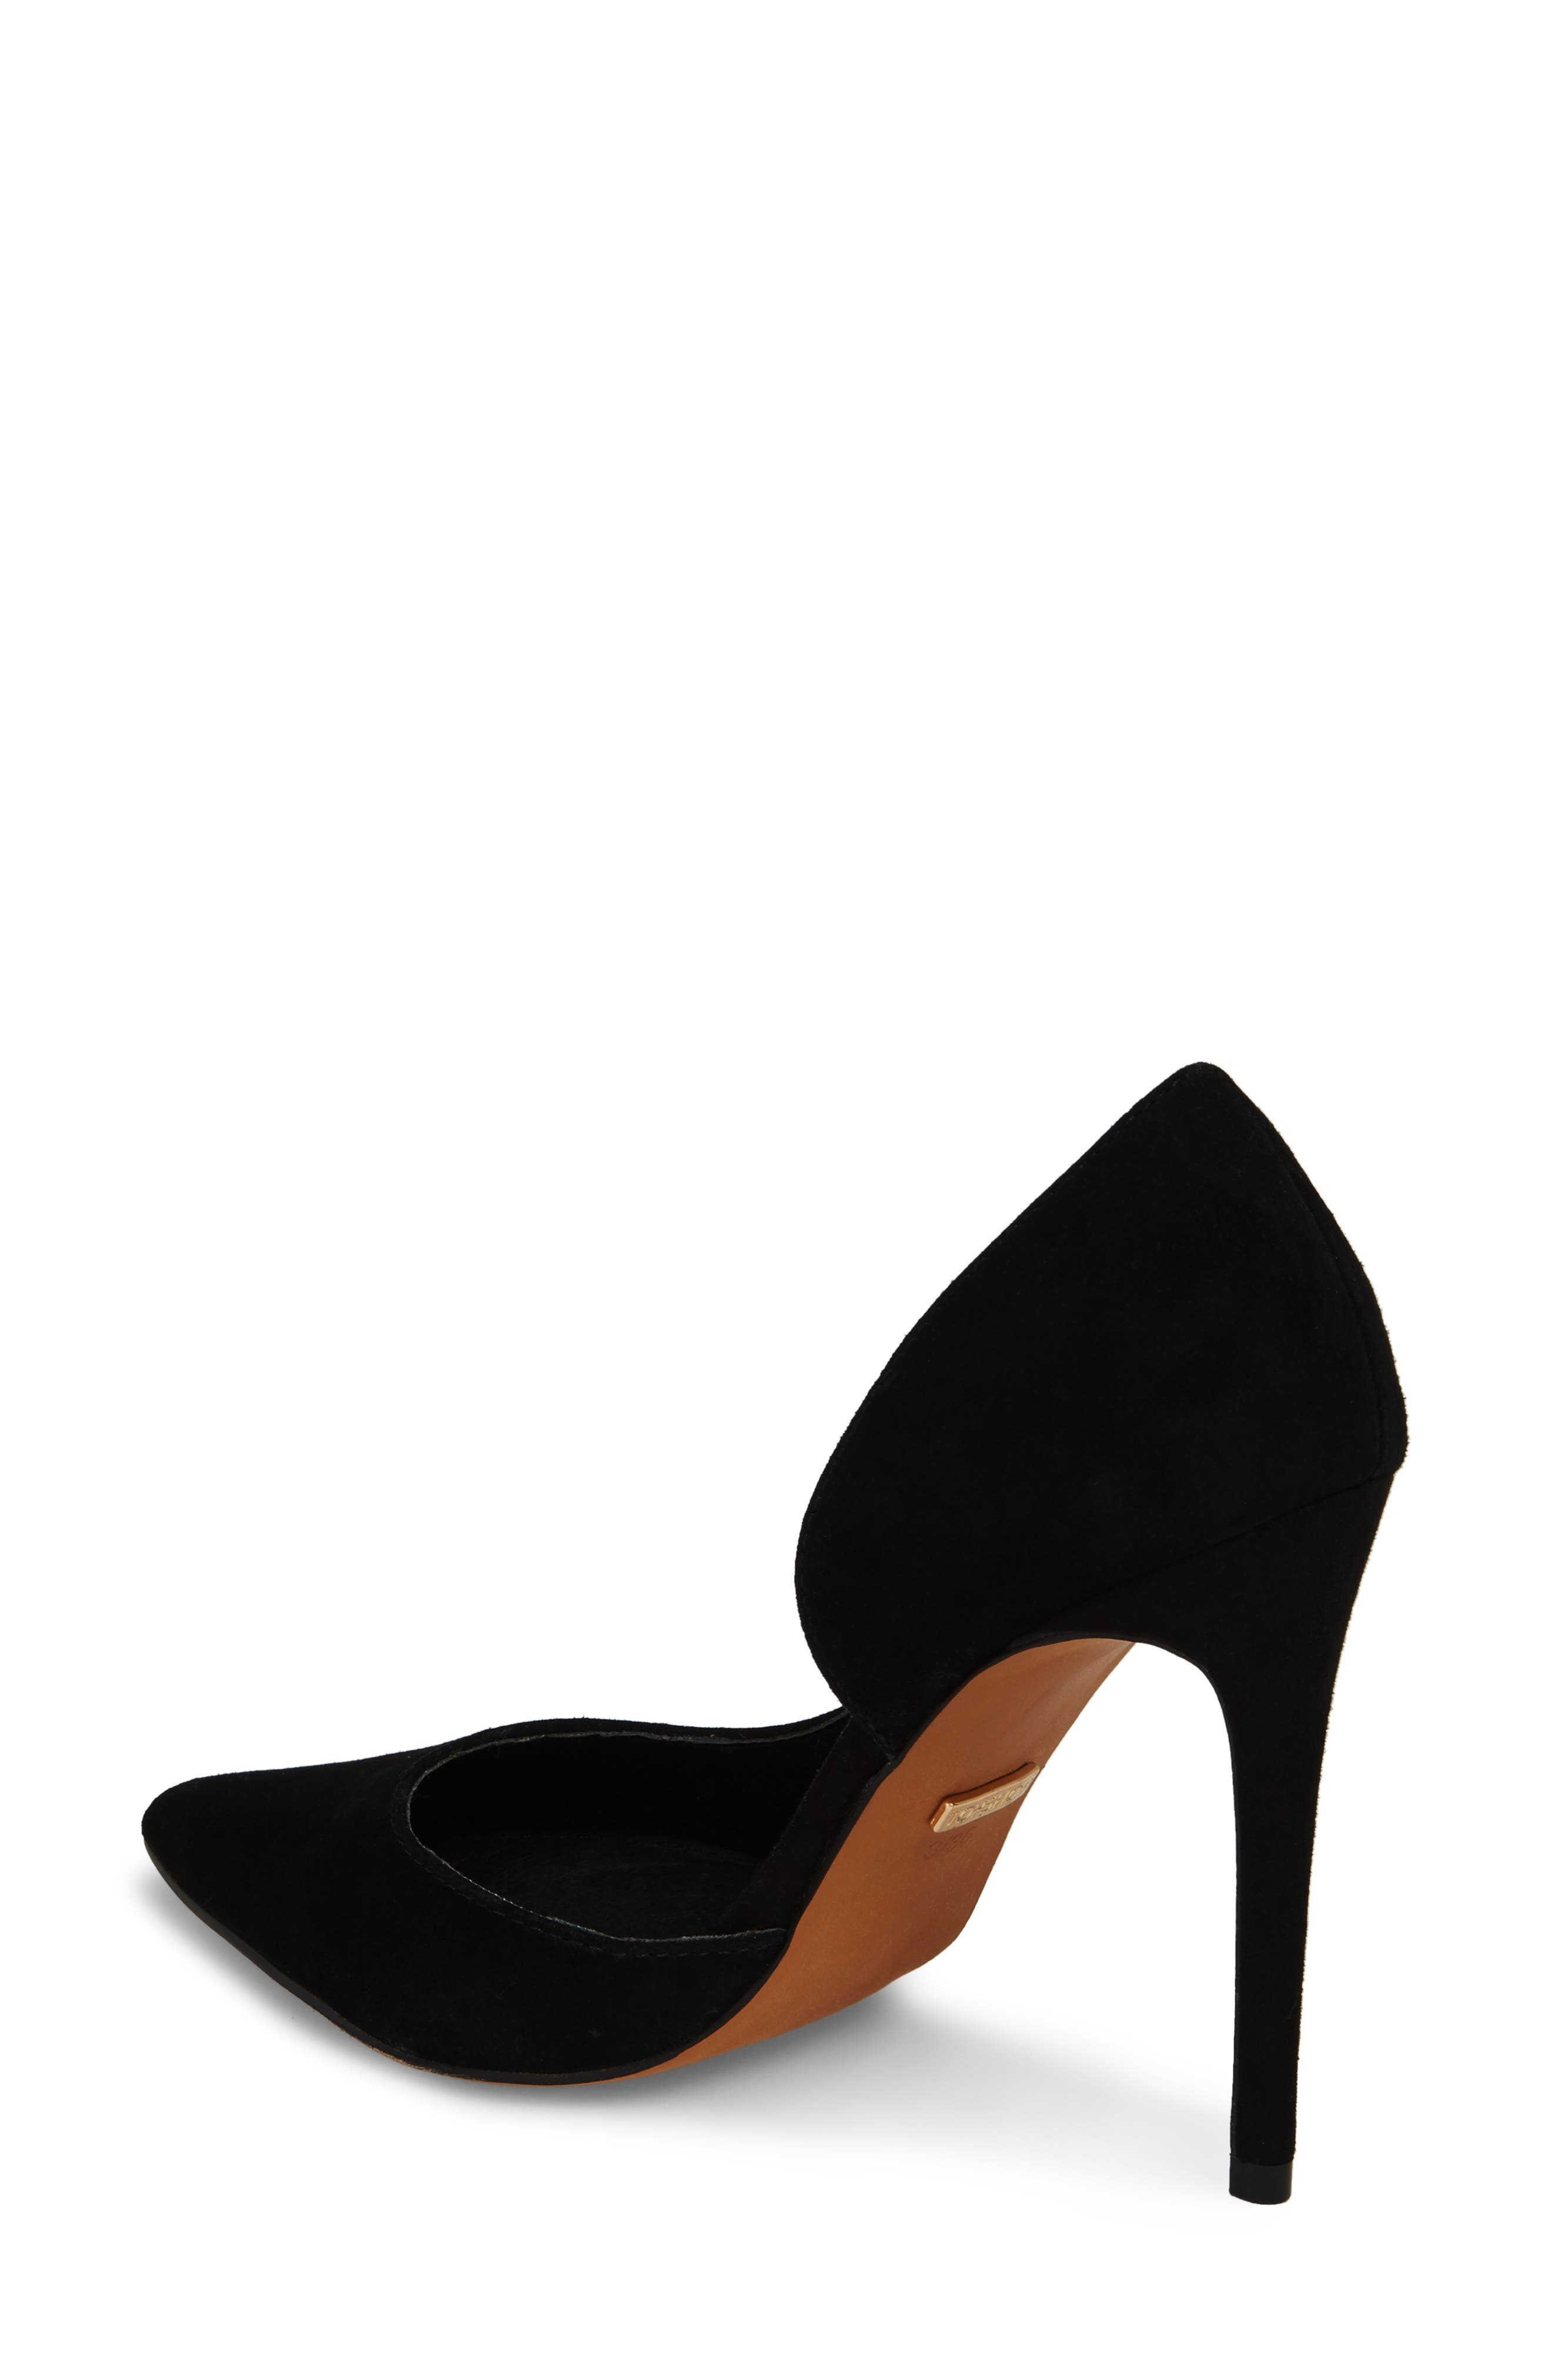 08b52d99ee67c9 Topshop Women s Shoes